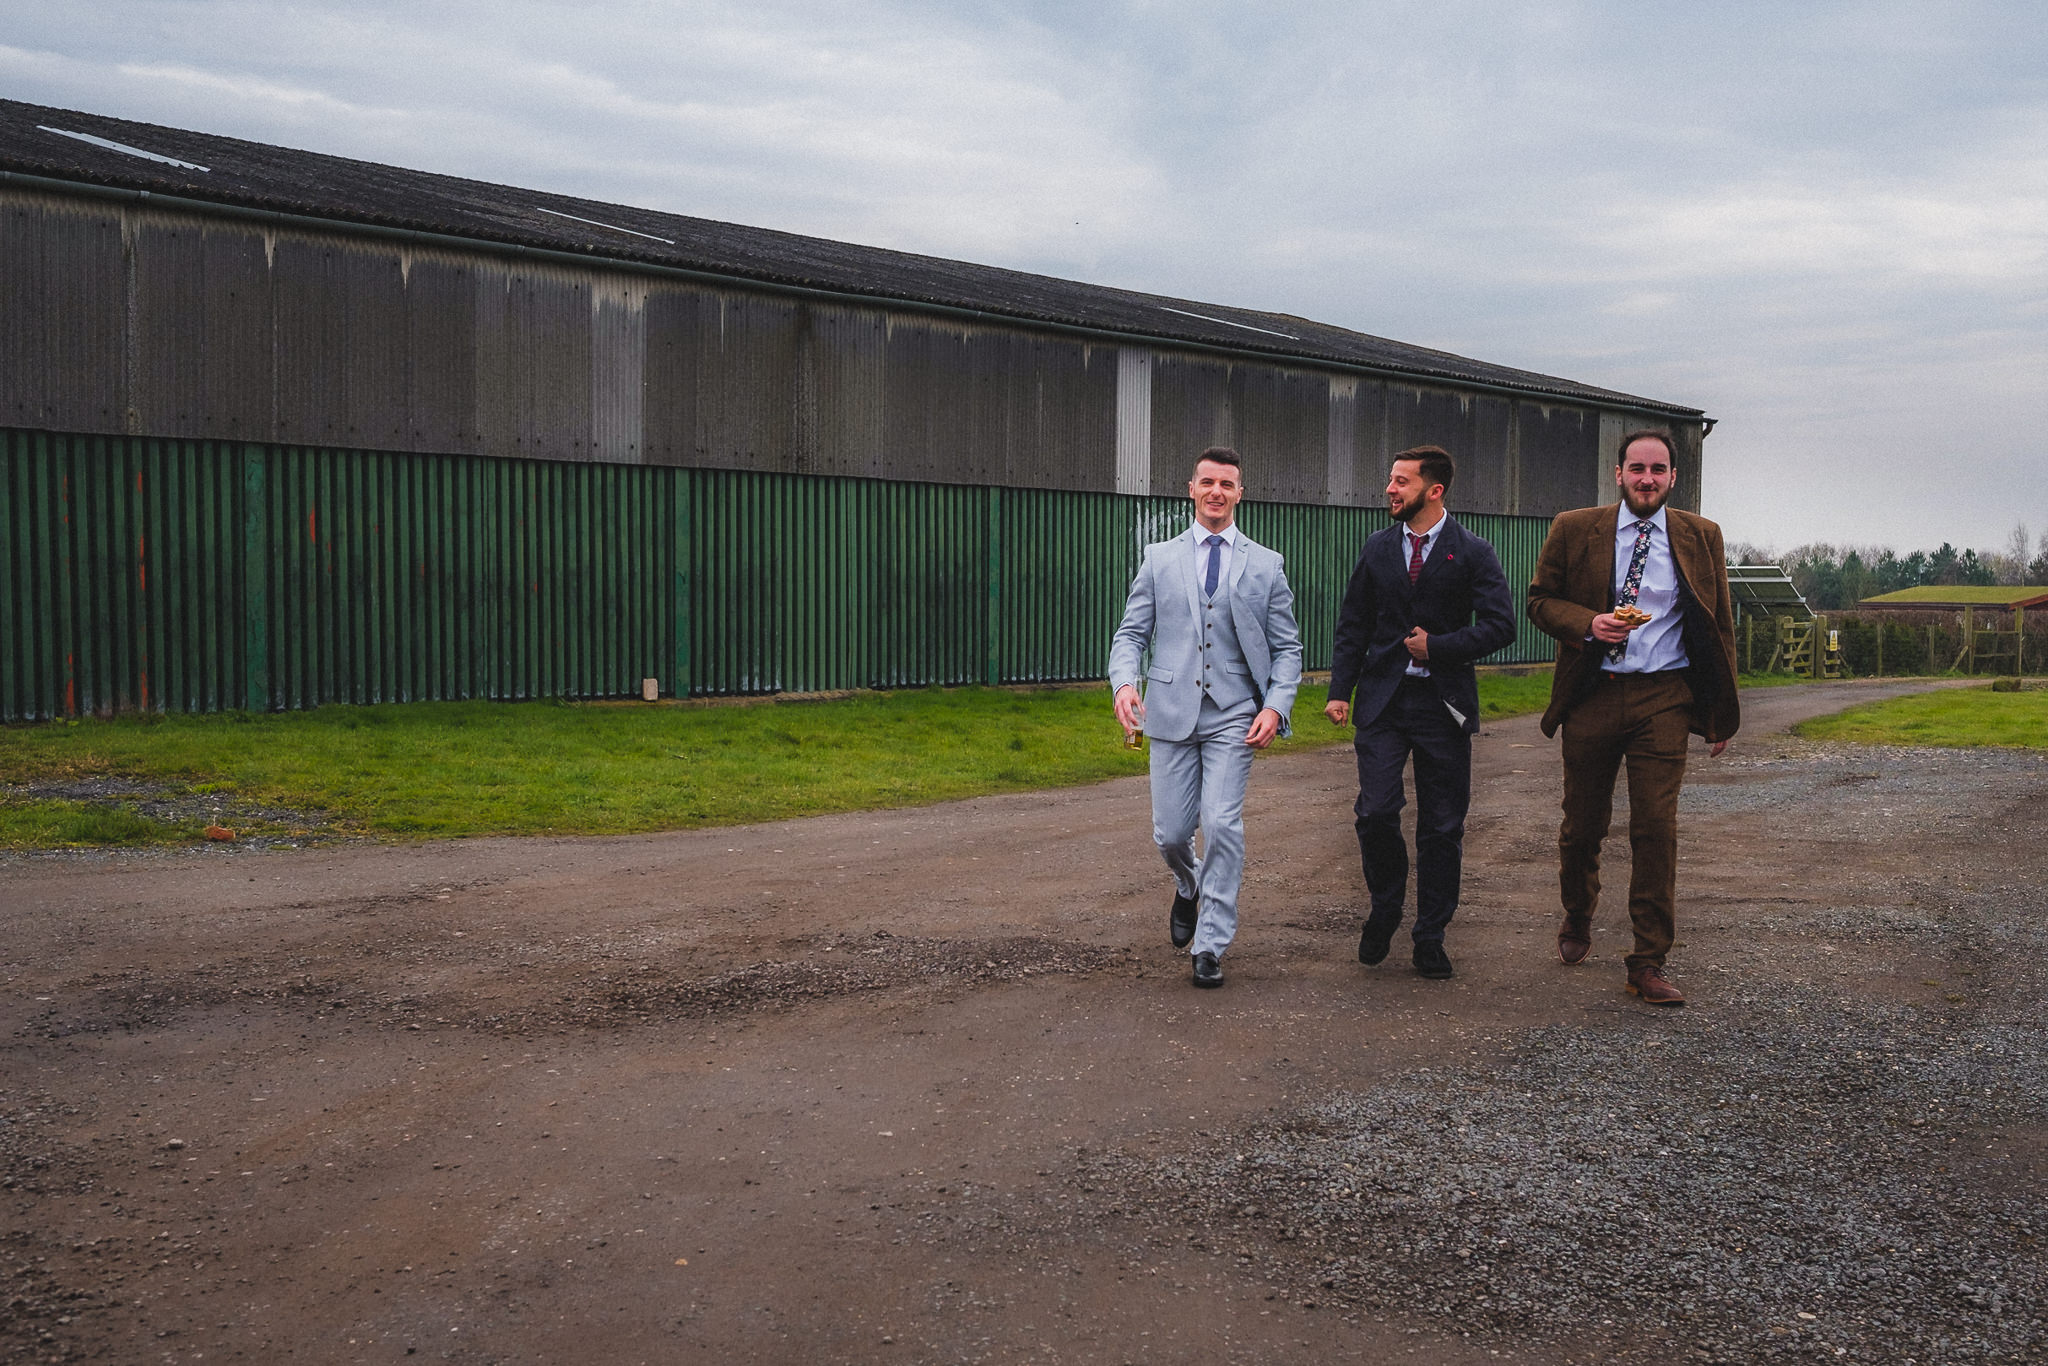 Candid wedding photography of groomsmen getting ready in style for wedding at Berts Barrow Farm